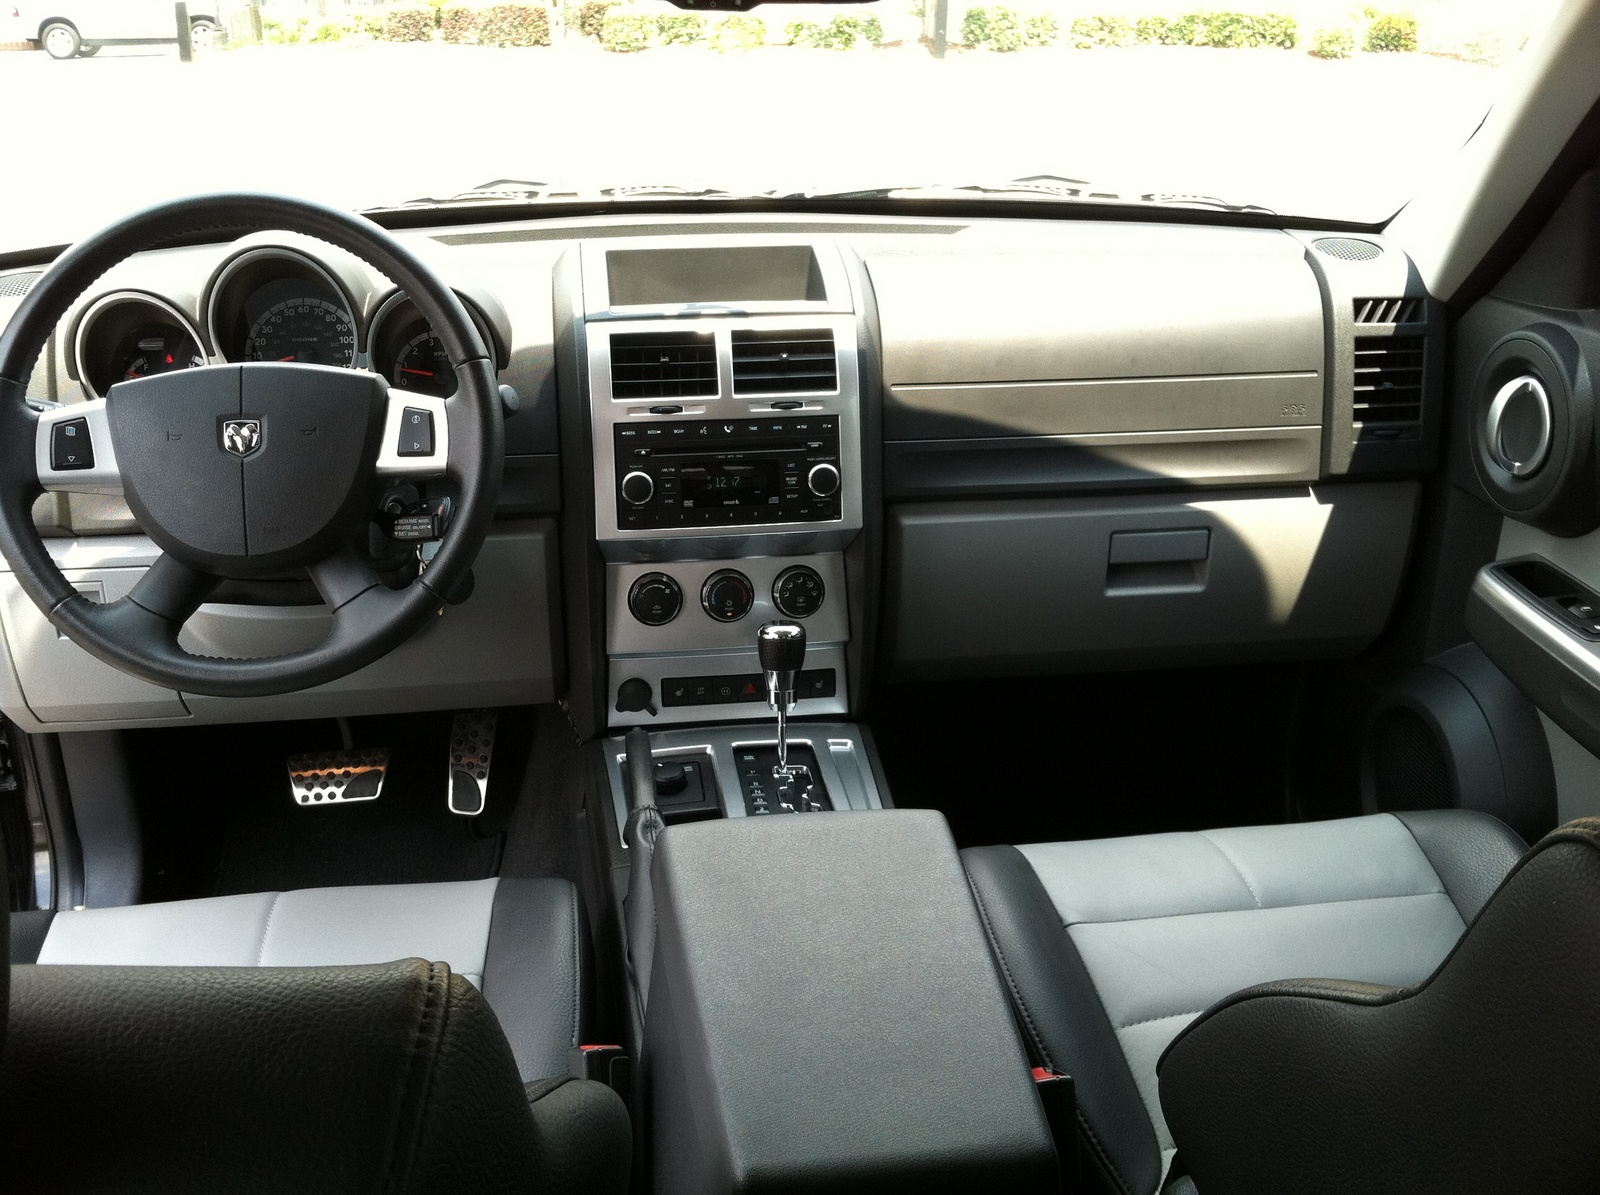 2010 Dodge Nitro Interior 2018 Dodge Reviews